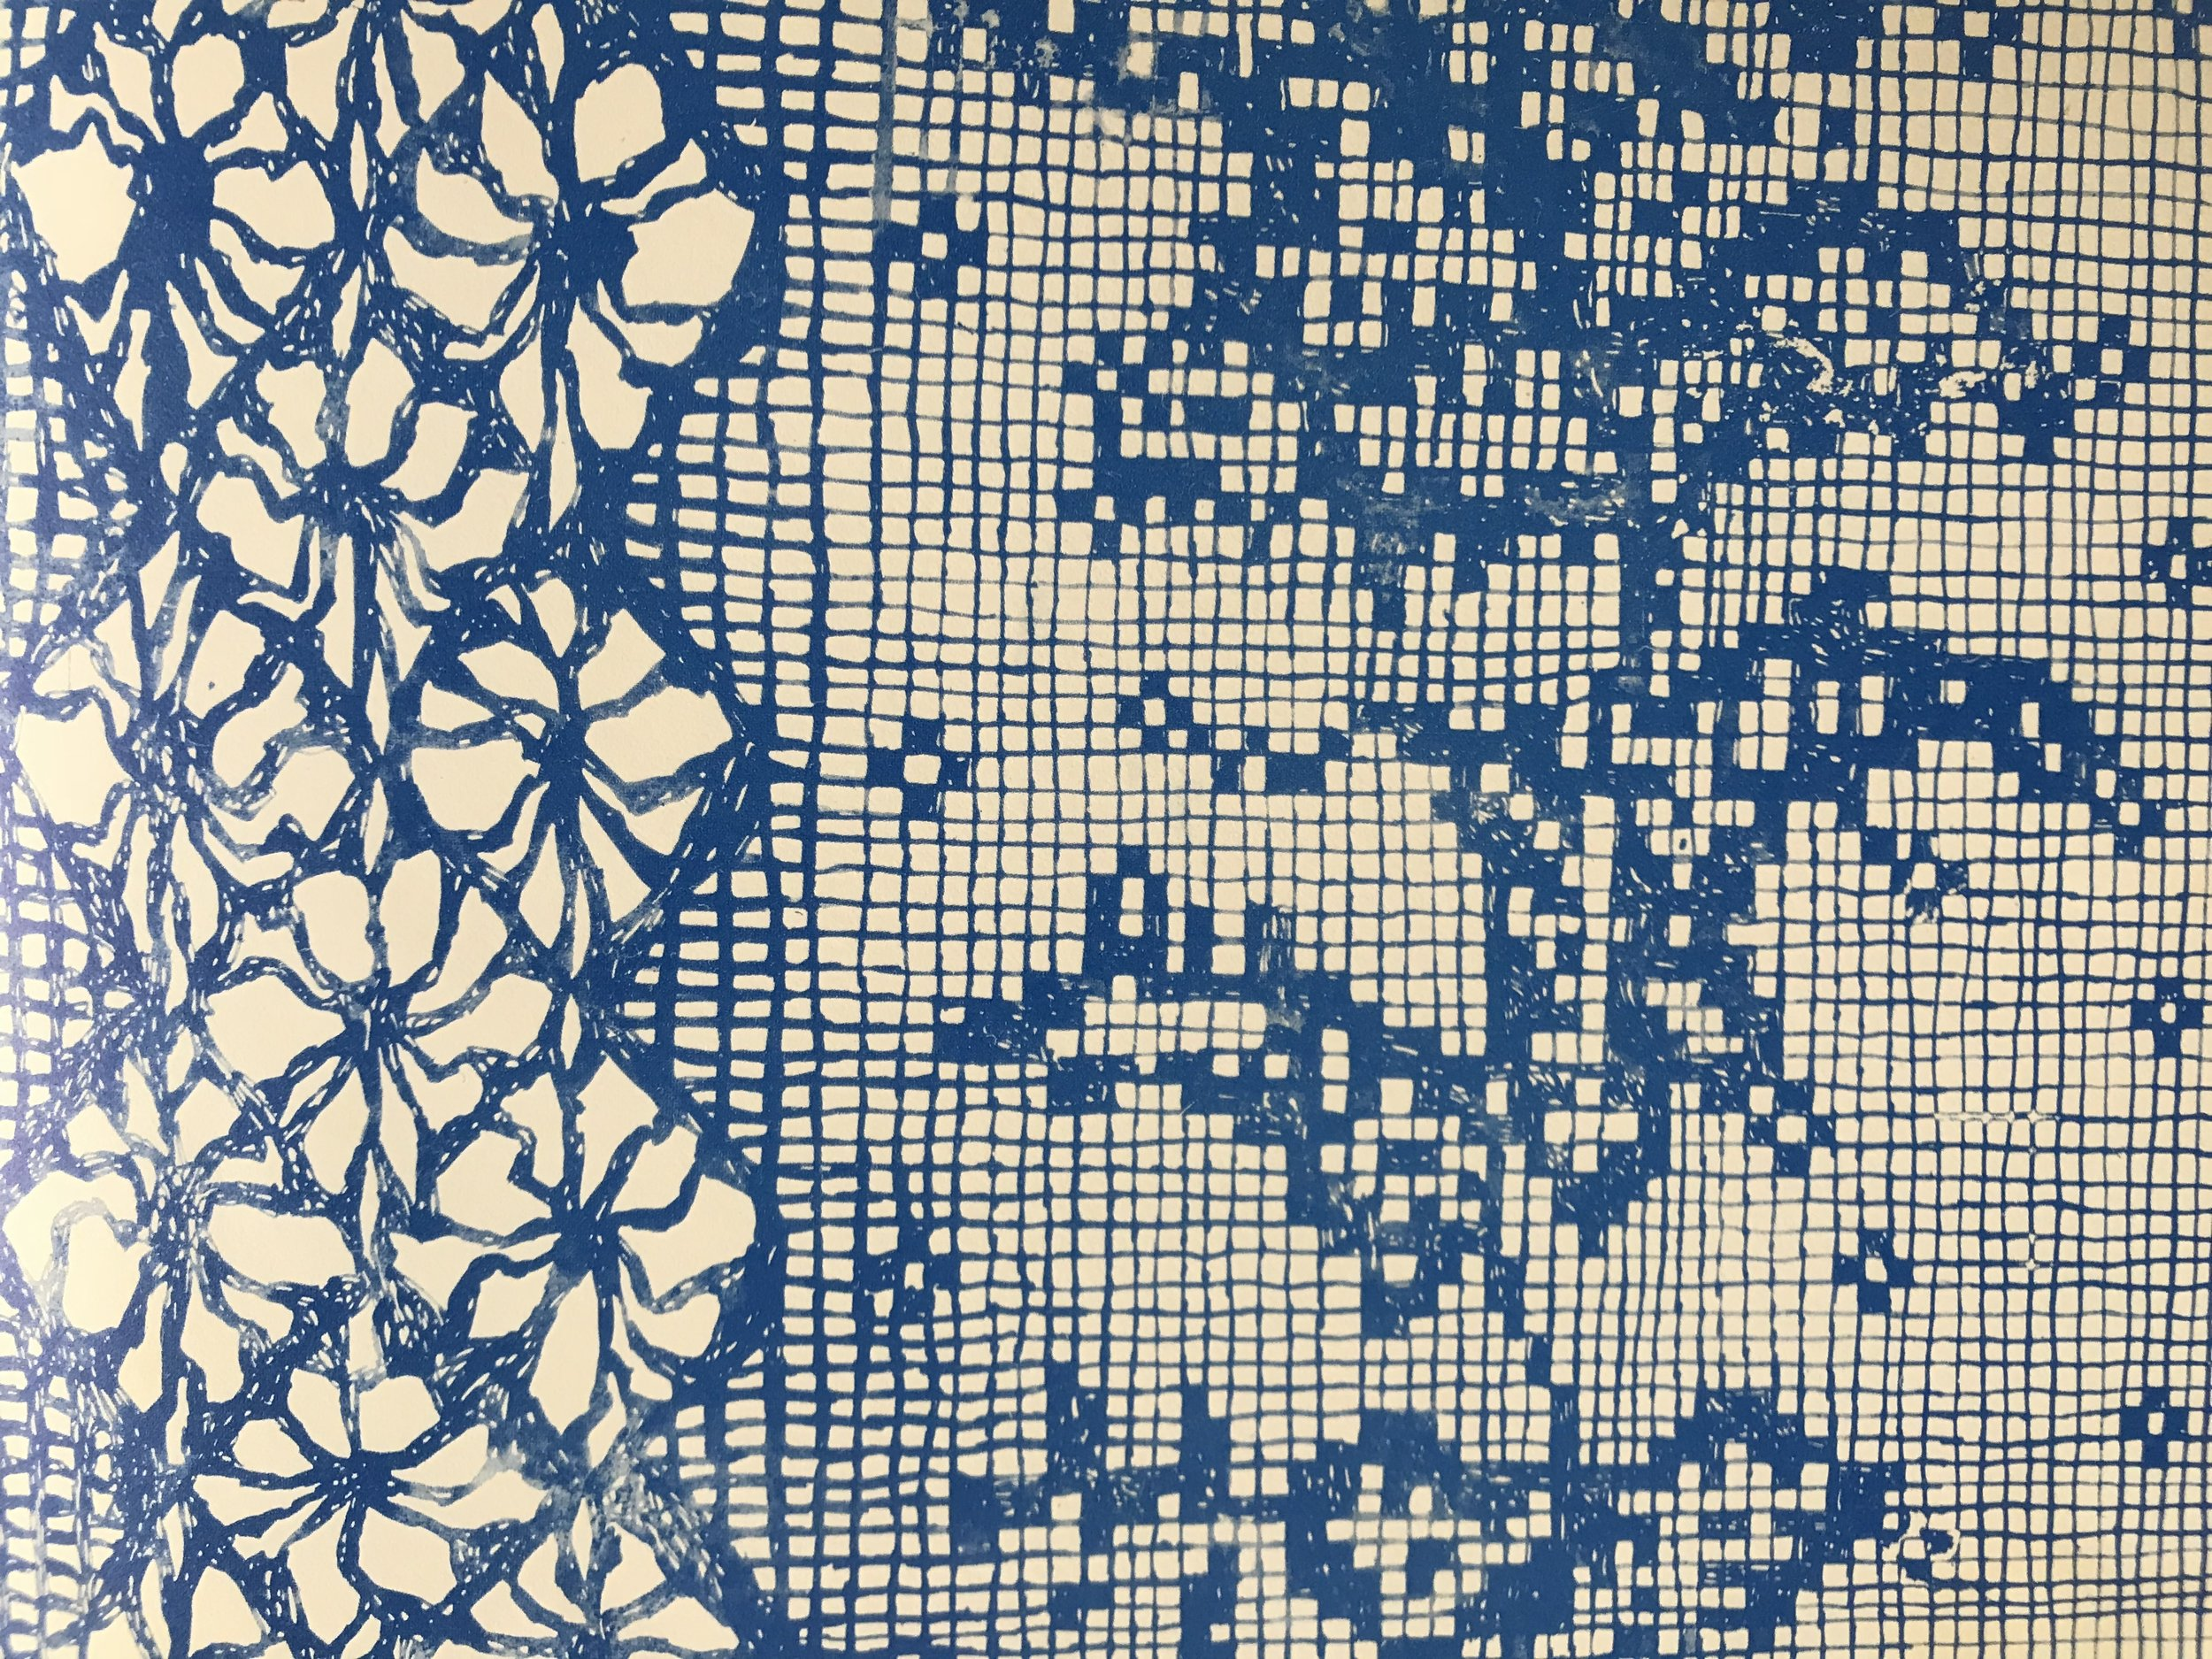 Detail of Charles Keeping's endpaper image for  Through the Window  (OUP 1970)